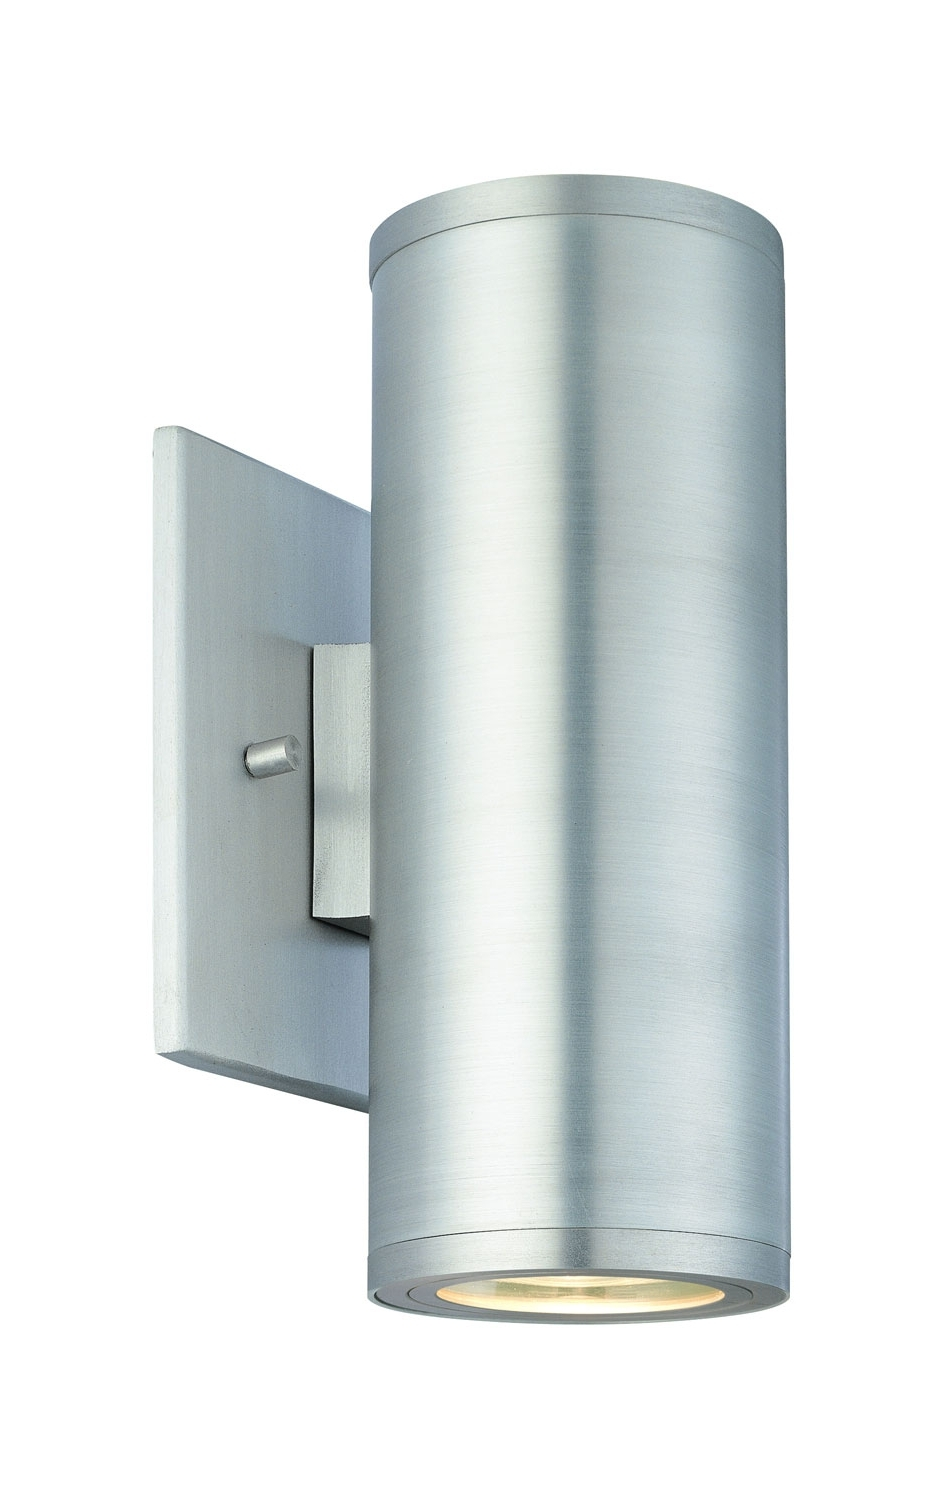 Light : Exterior Wall Mounted Light Fixtures Commercial Photo In Famous Outdoor Wall Hung Lights (View 14 of 20)